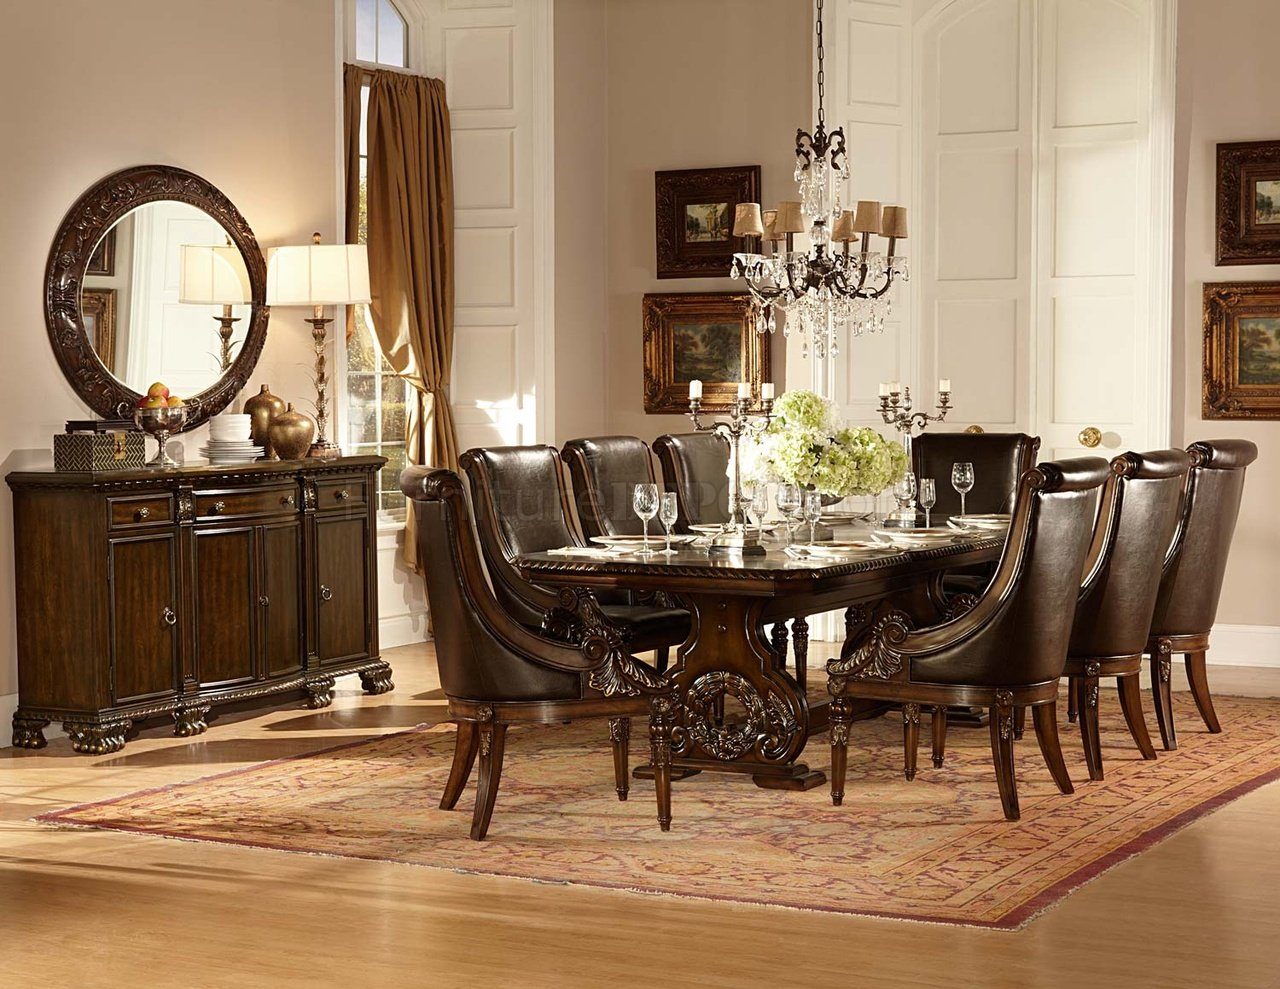 Formal Dining Room Sets For 10 Orleans 2168 108 Dining Table In Cherry By Homelegance W Options